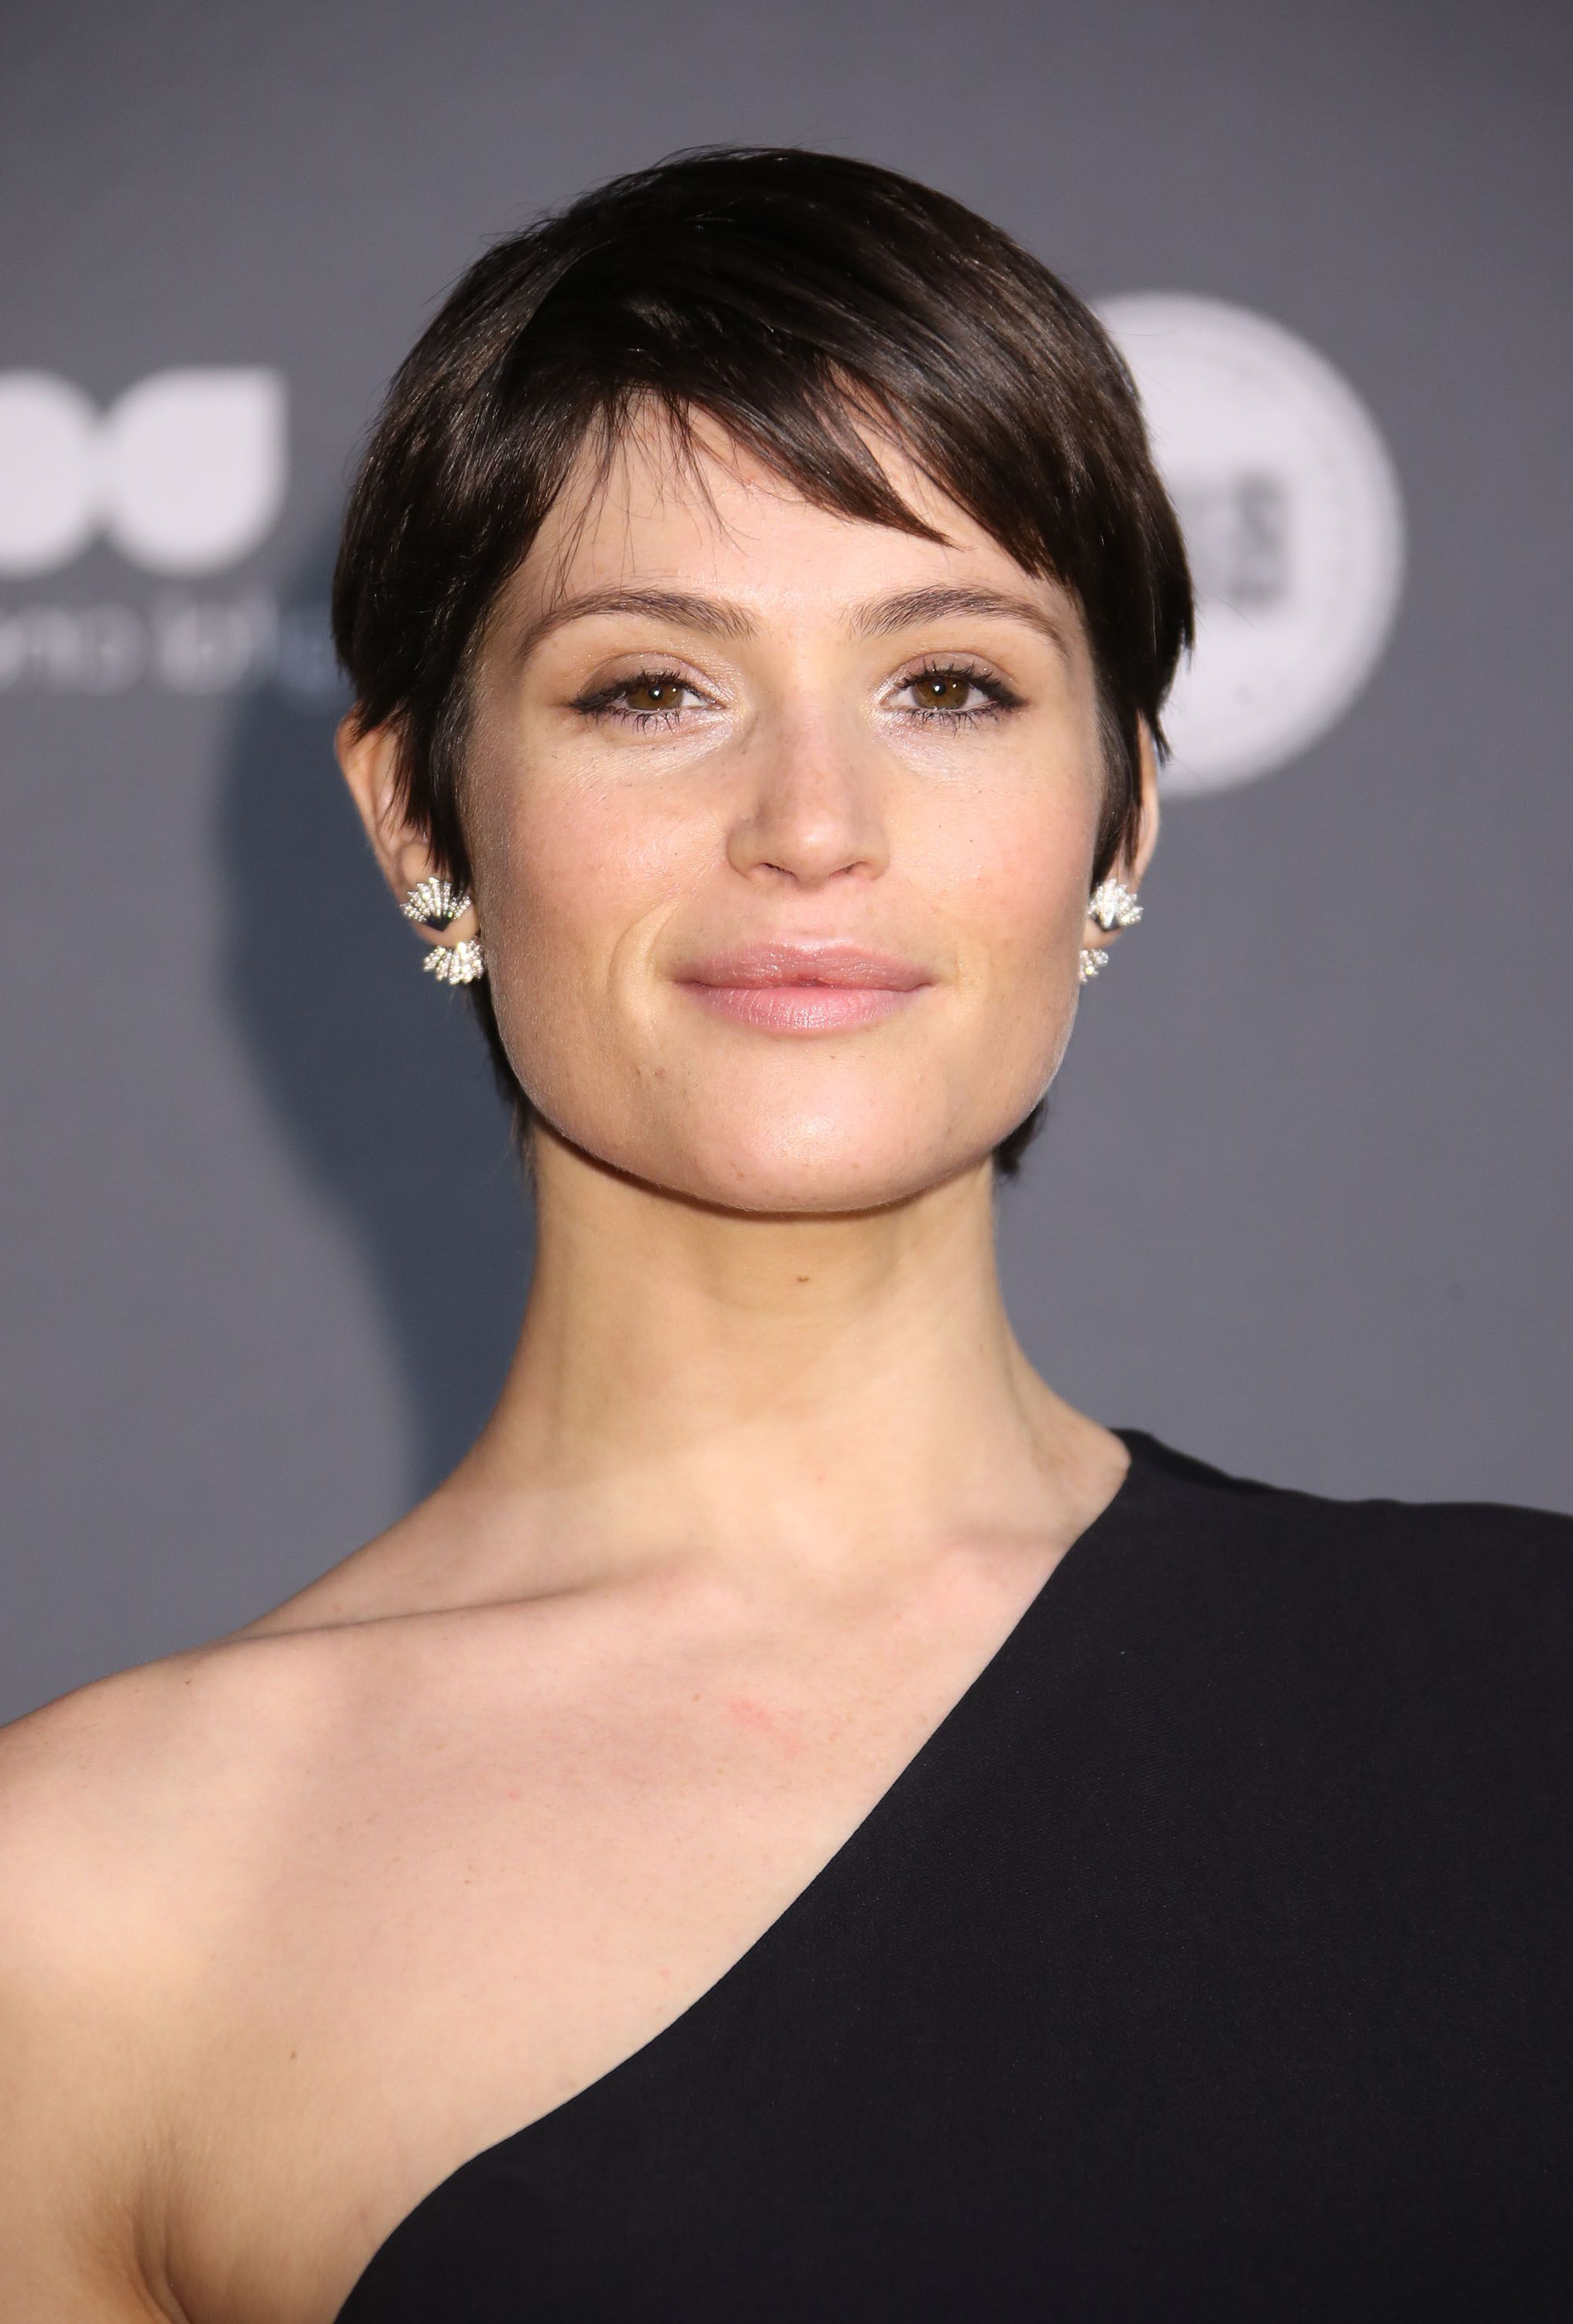 65 Best Short Hairstyles, Haircuts, And Short Hair Ideas For 2018 Regarding Short Haircuts With Long Side Bangs (Gallery 4 of 25)